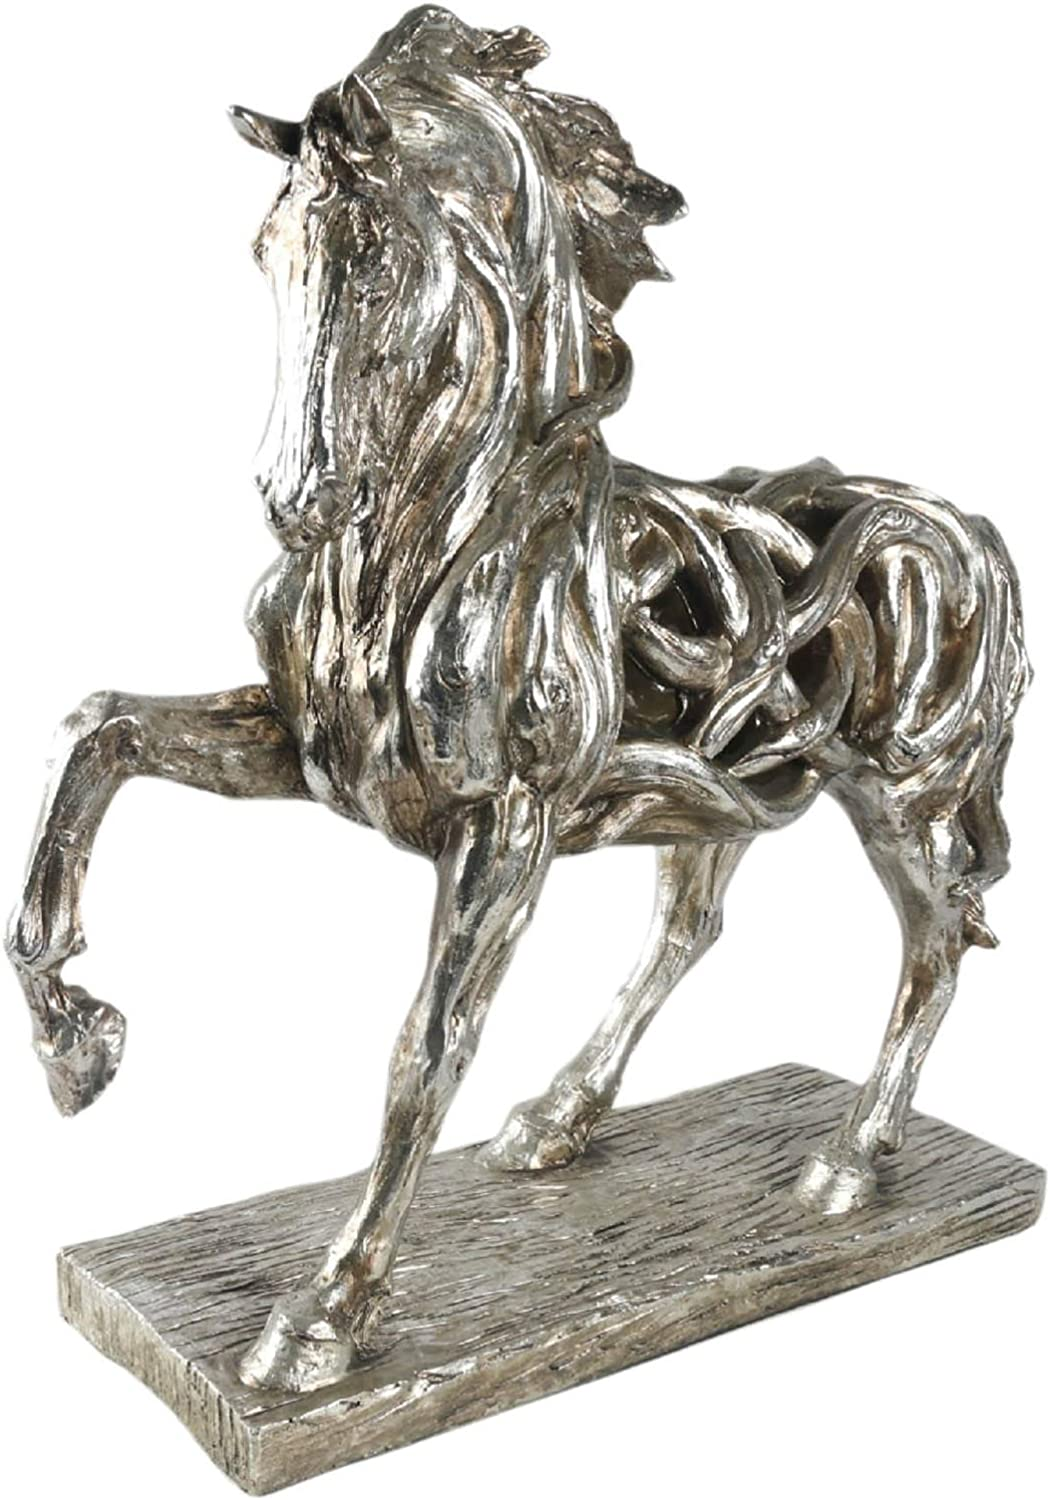 Middle-England 51cm Horse Stallion Mare Hollow Statue Figure Silver Grey Polystone Resin